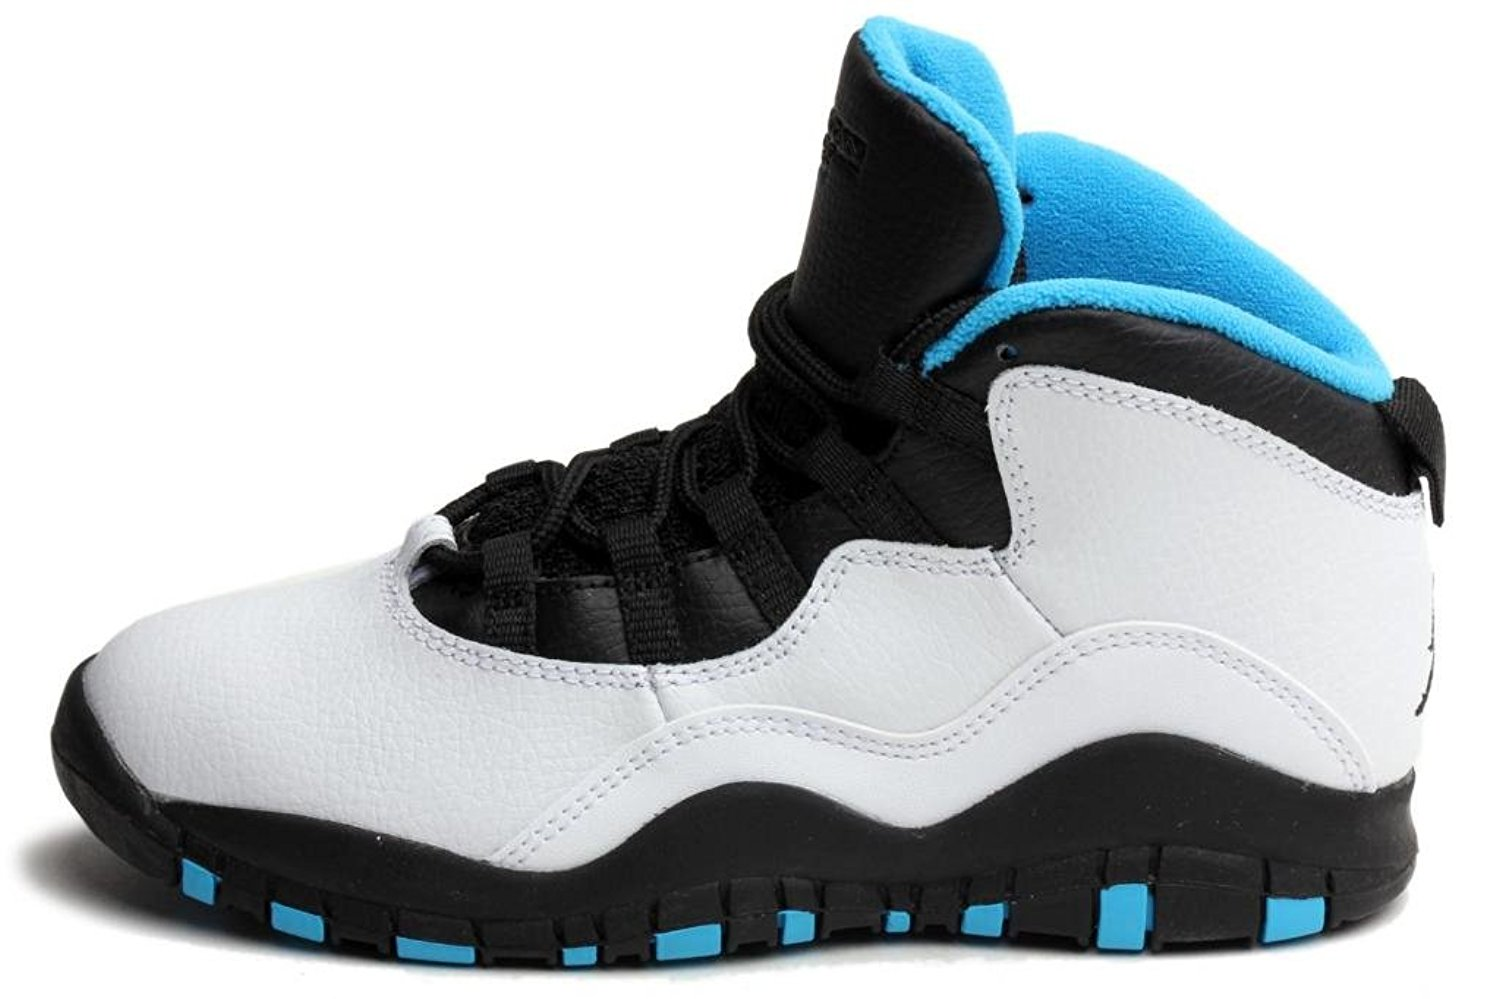 finest selection 00453 bf0fe Get Quotations · Jordan Pre School Retro 10 (Ps) White Dark Powder Blue- Black 310807